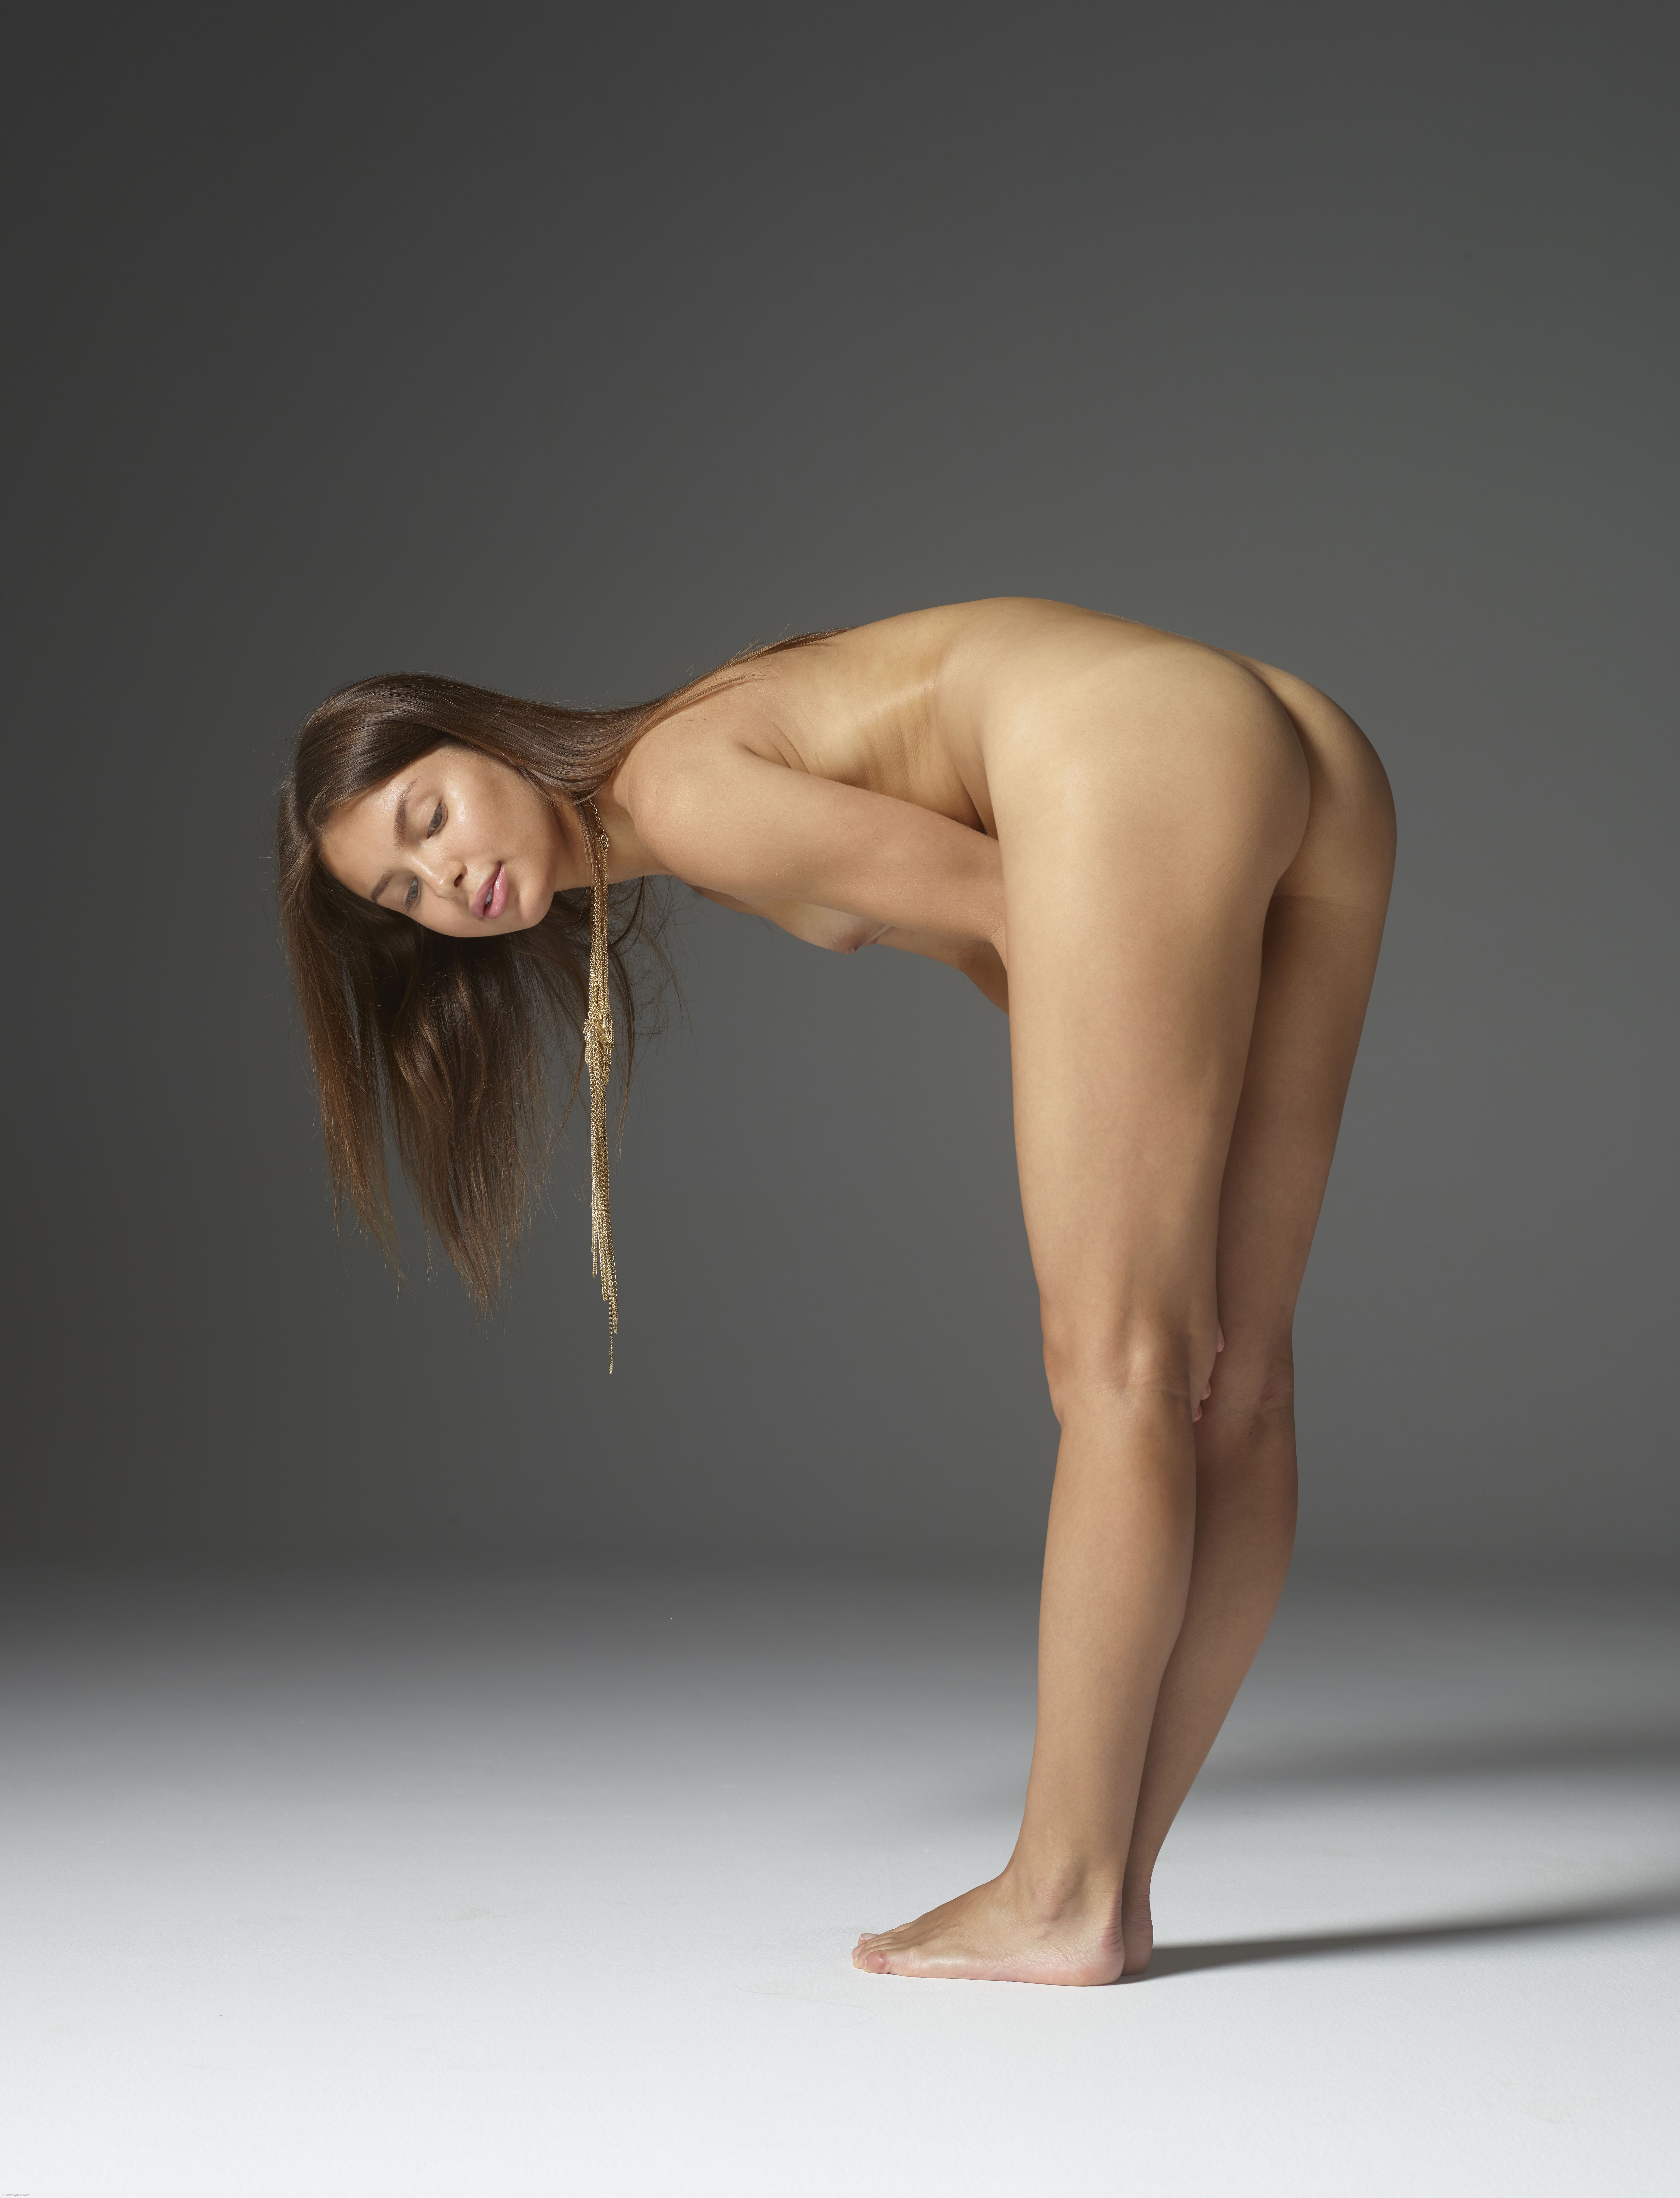 vids-porn-nude-female-reference-photo-britney